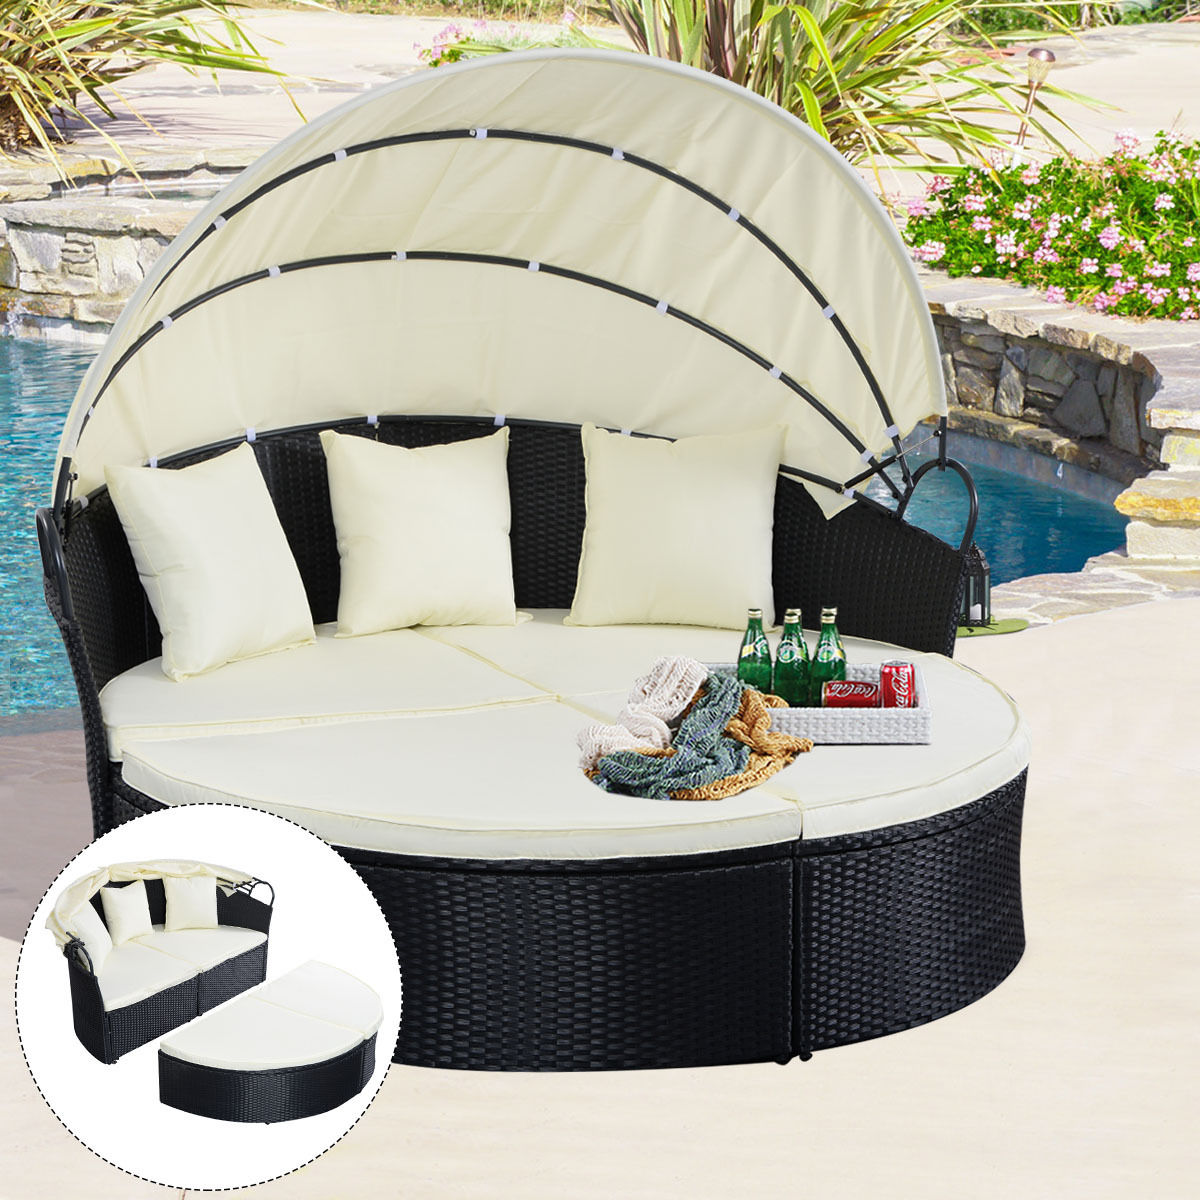 Charmant Costway Outdoor Patio Sofa Furniture Round Retractable Canopy Daybed Black  Wicker Rattan